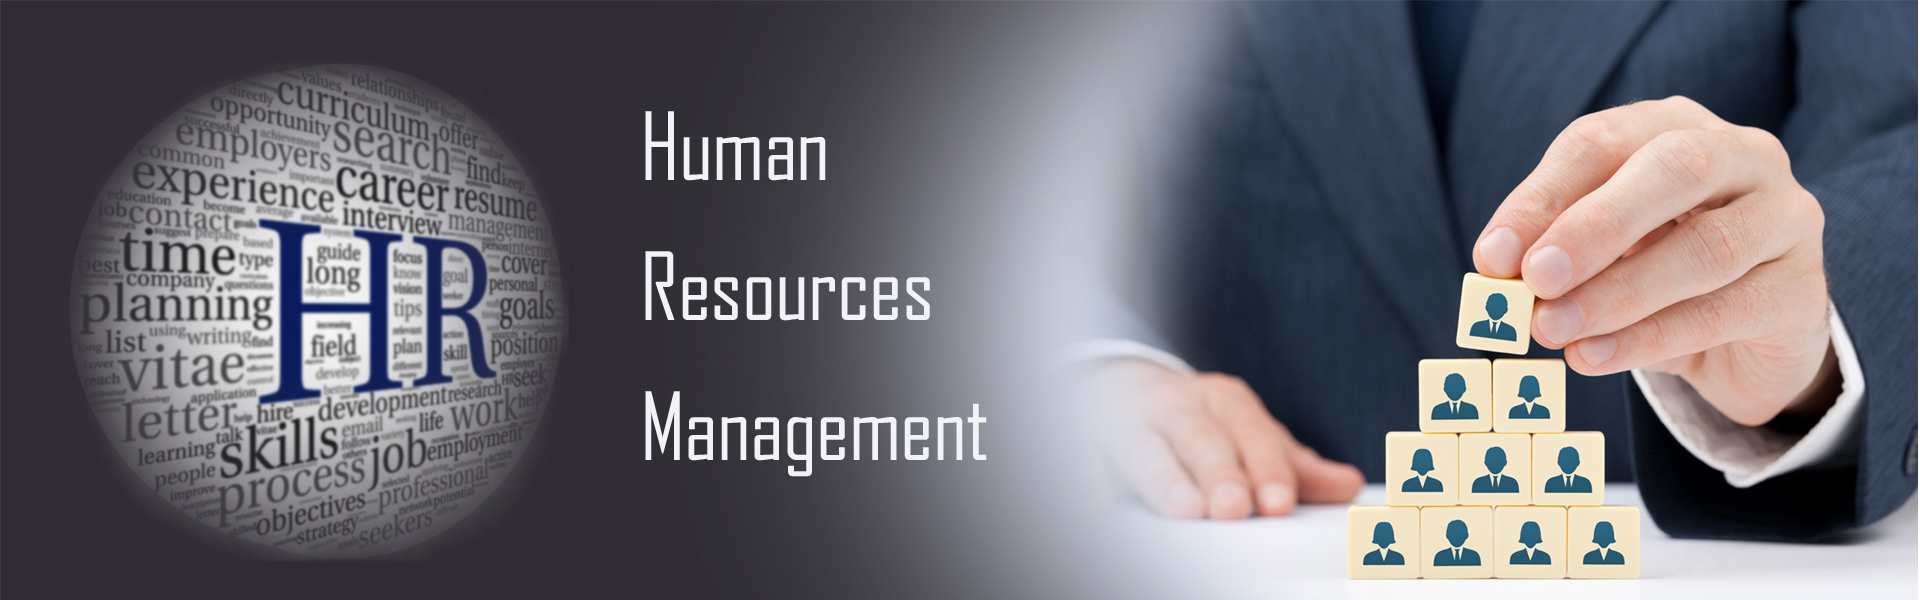 human resources assignment At royal rainbow tours by: rina kurniawati abstract human resource management is an important aspect for any organization in pursuing its goal.